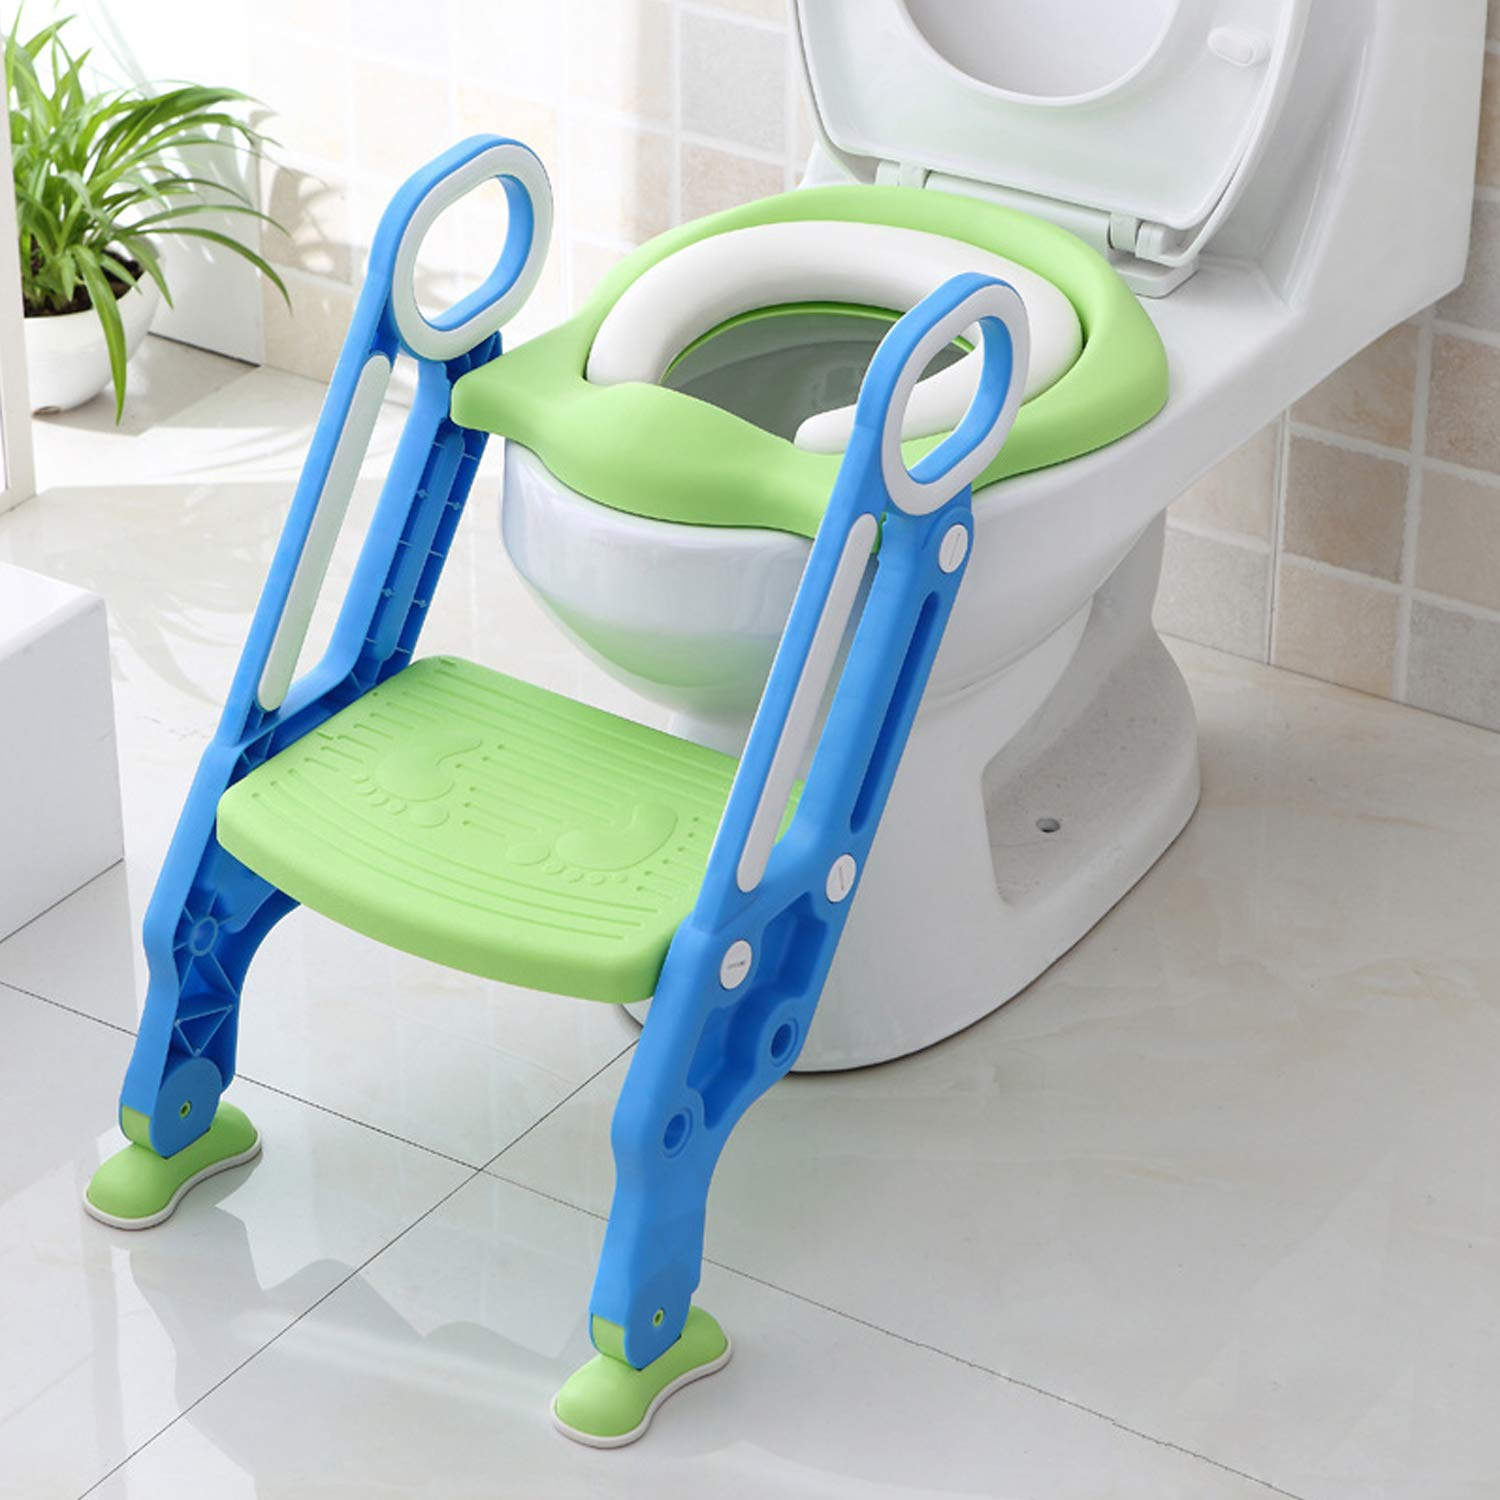 Potty Toilet Trainer Seat with Step Stool Ladder, Adjustable Toddler Toilet Ladder Trainer with Handles & Soft Cushion ,Non-Slip (Green) by jocabo